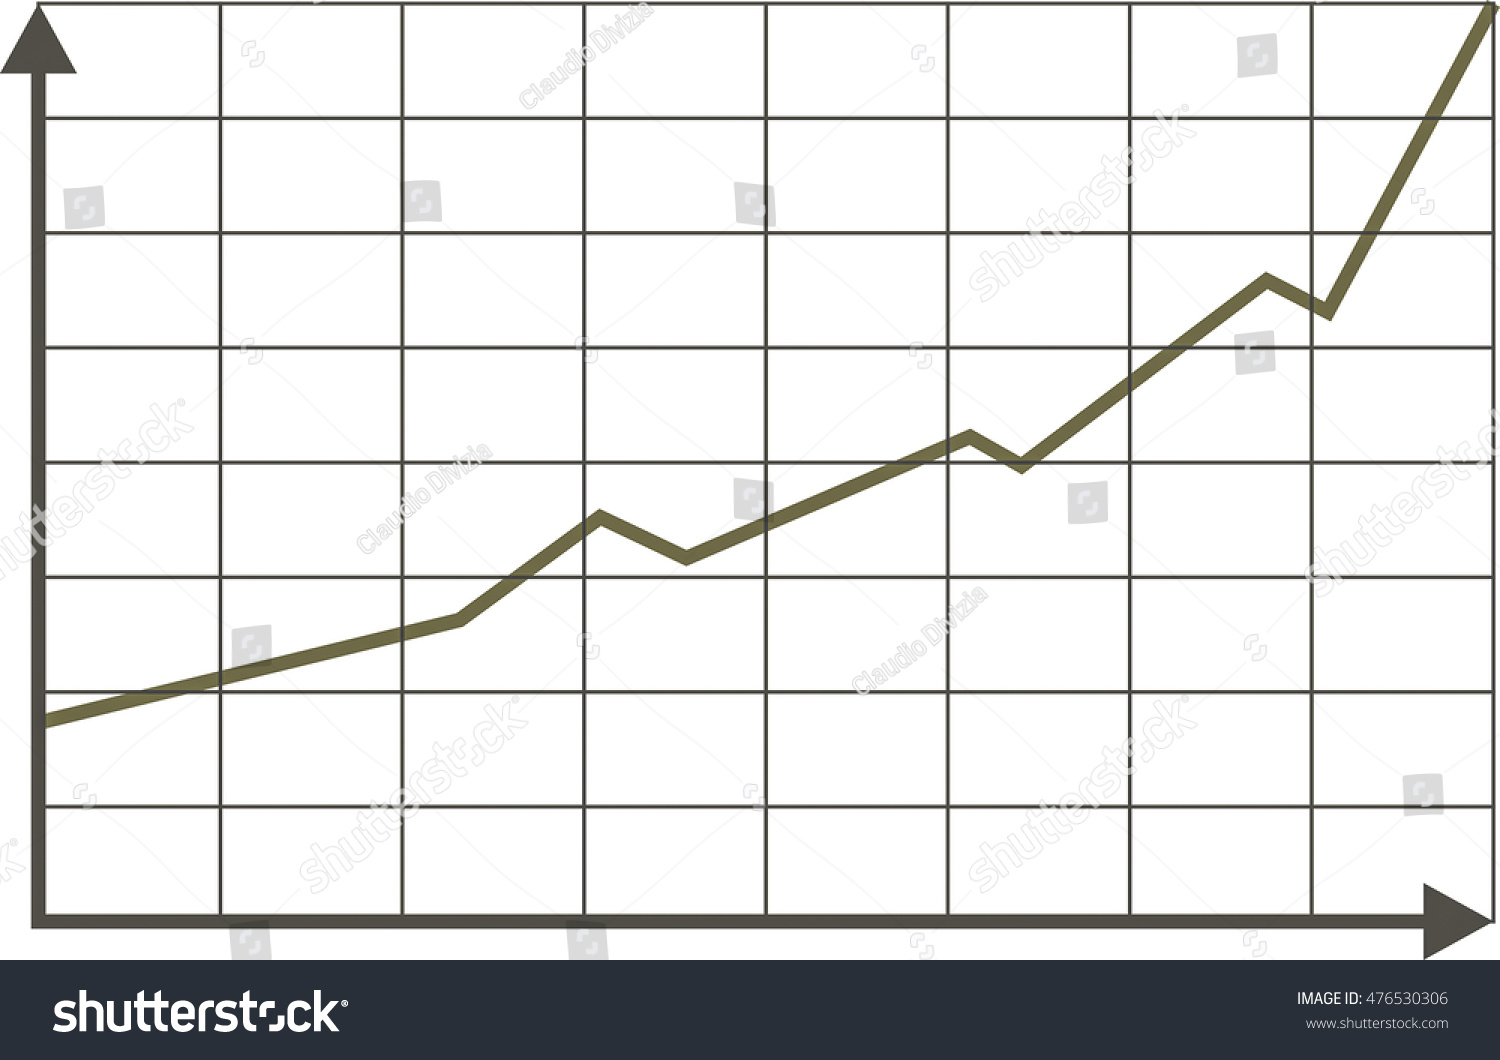 Tcs revenue growth chart images free any chart examples tcs revenue growth chart choice image free any chart examples sheltie growth chart gallery free any nvjuhfo Gallery